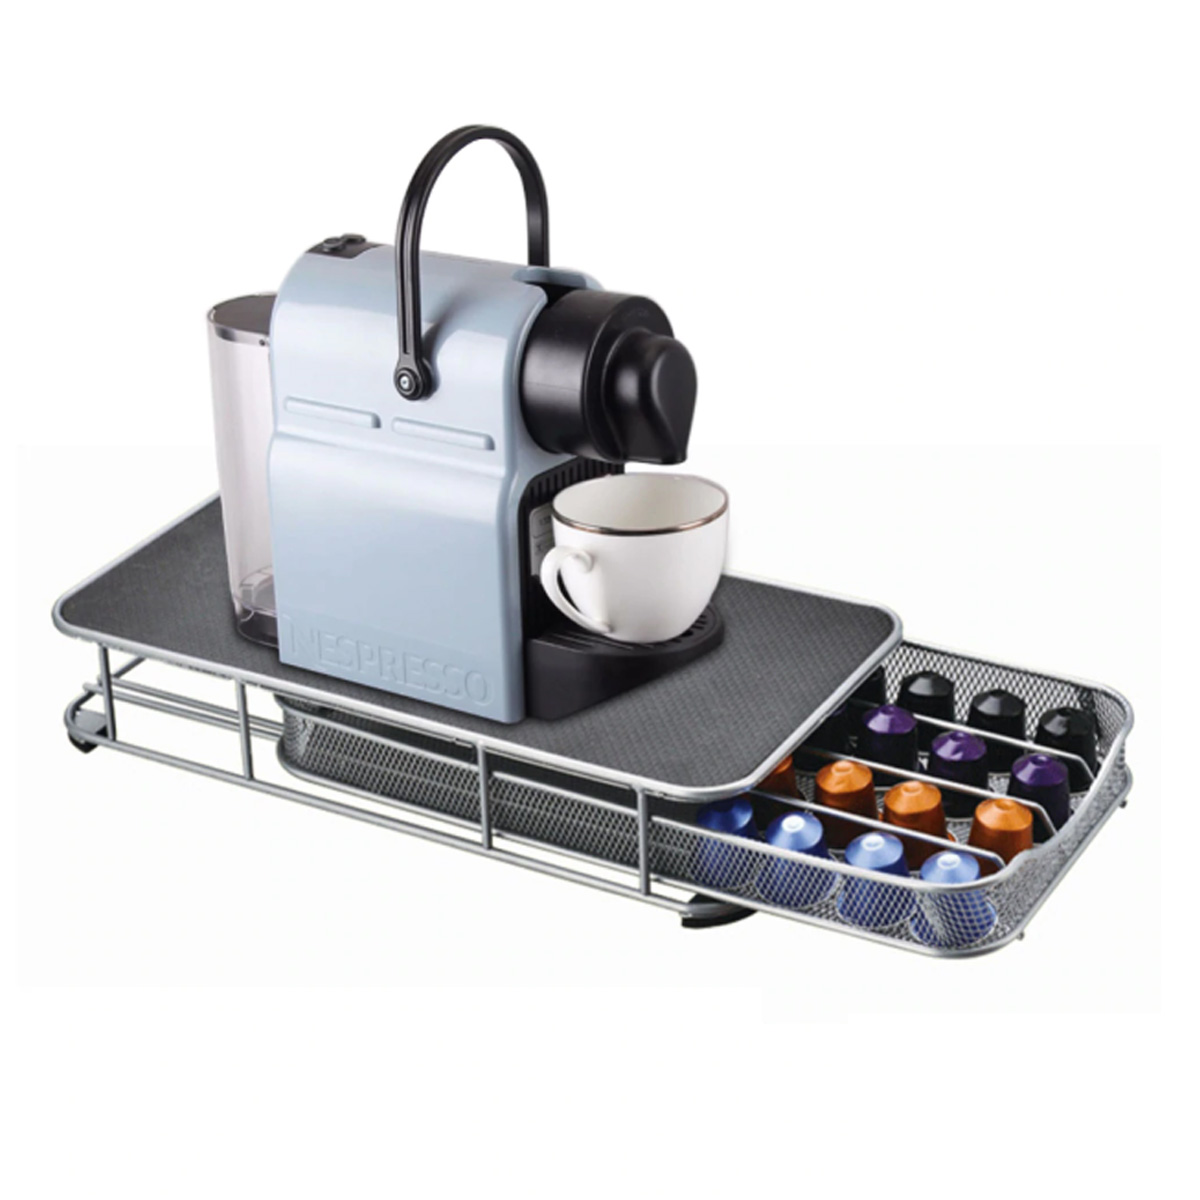 Under the Brewer Coffee Capsule Storage Drawer Holder Organizer 40 Capsule for K-Cup Coffee Capsule